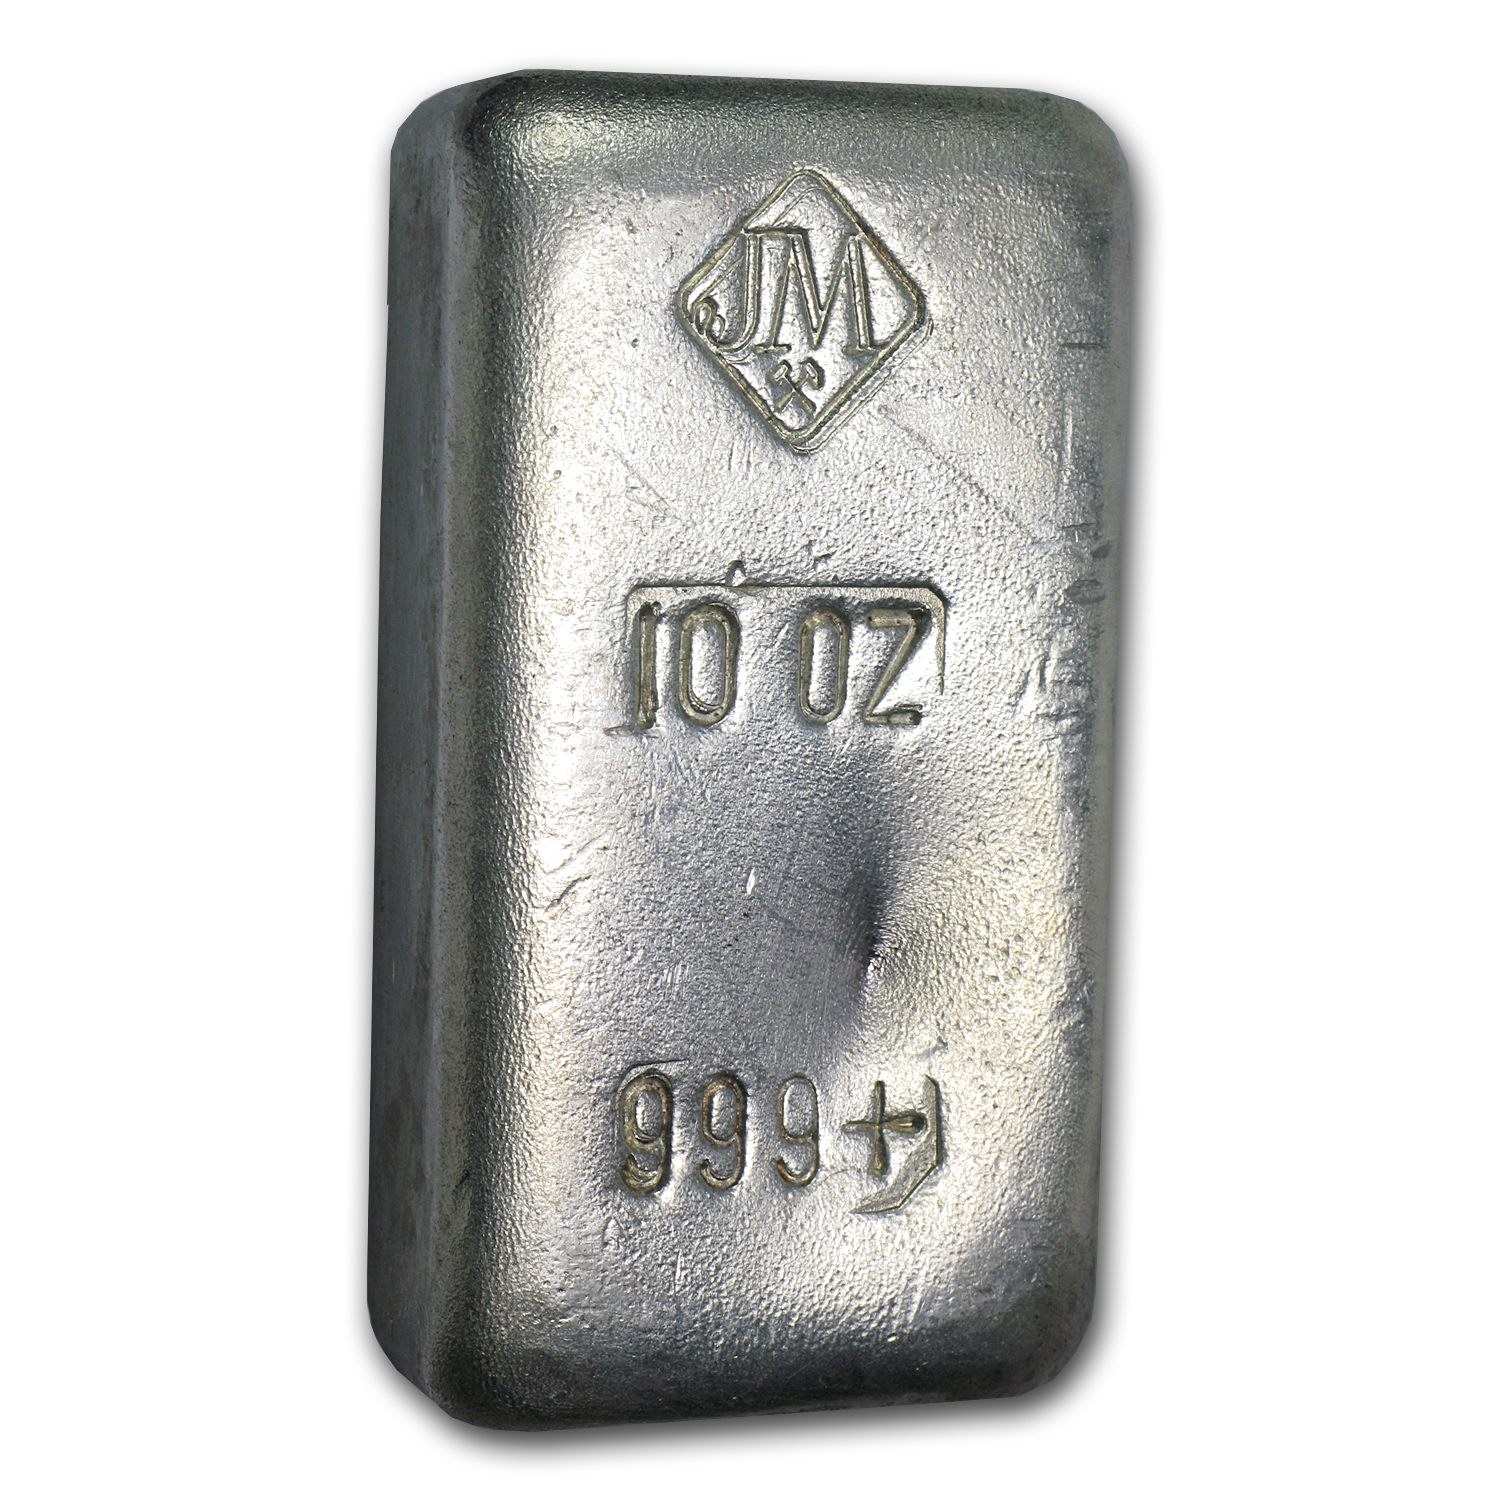 10 oz Silver Bar - Johnson Matthey (Poured, 1st Generation)